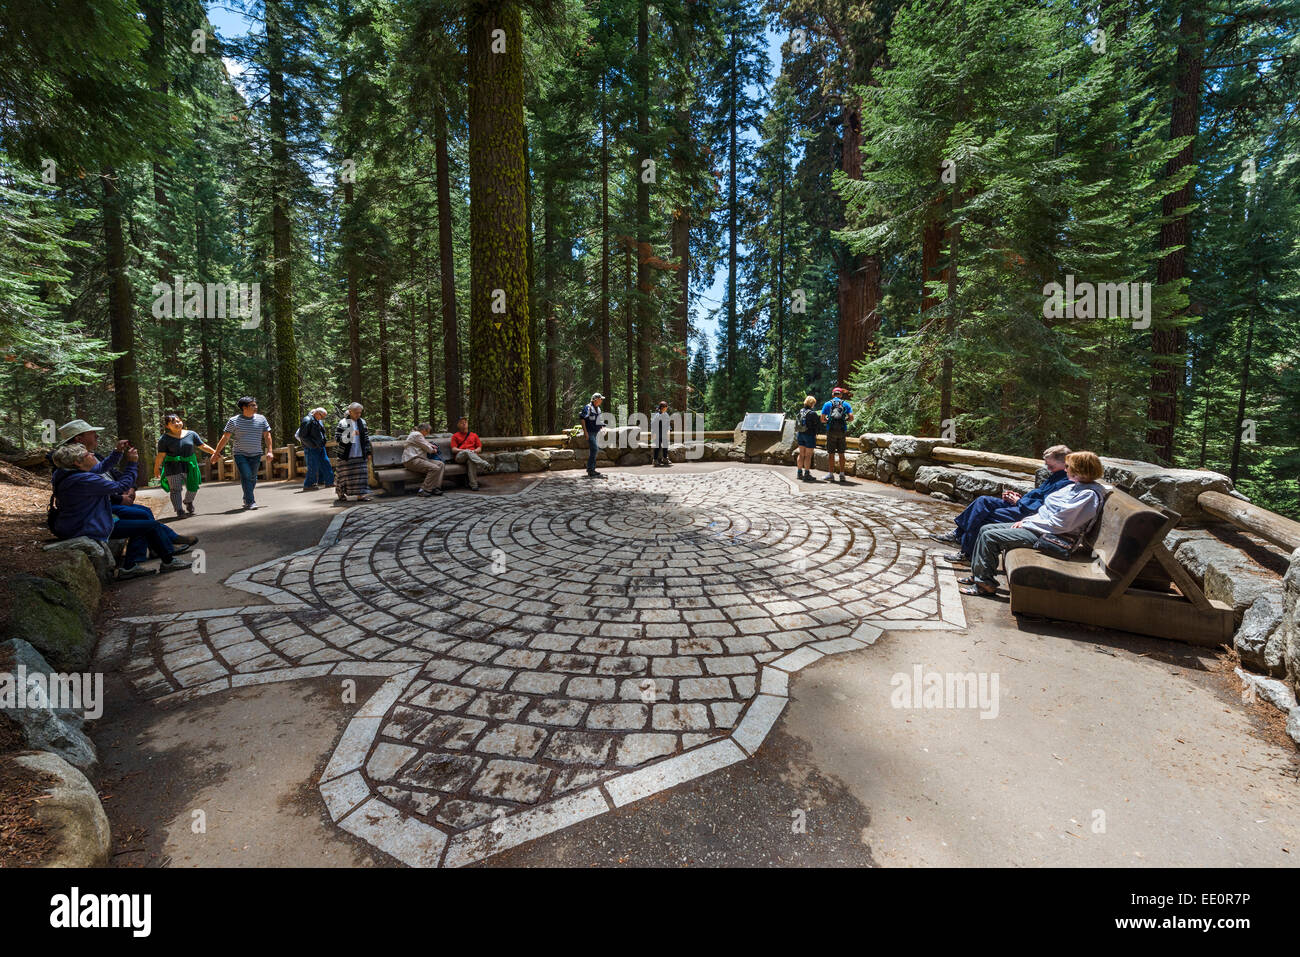 Stones laid out to show the size of the footprint of the General Sherman Tree, Sequoia National Park, California, - Stock Image